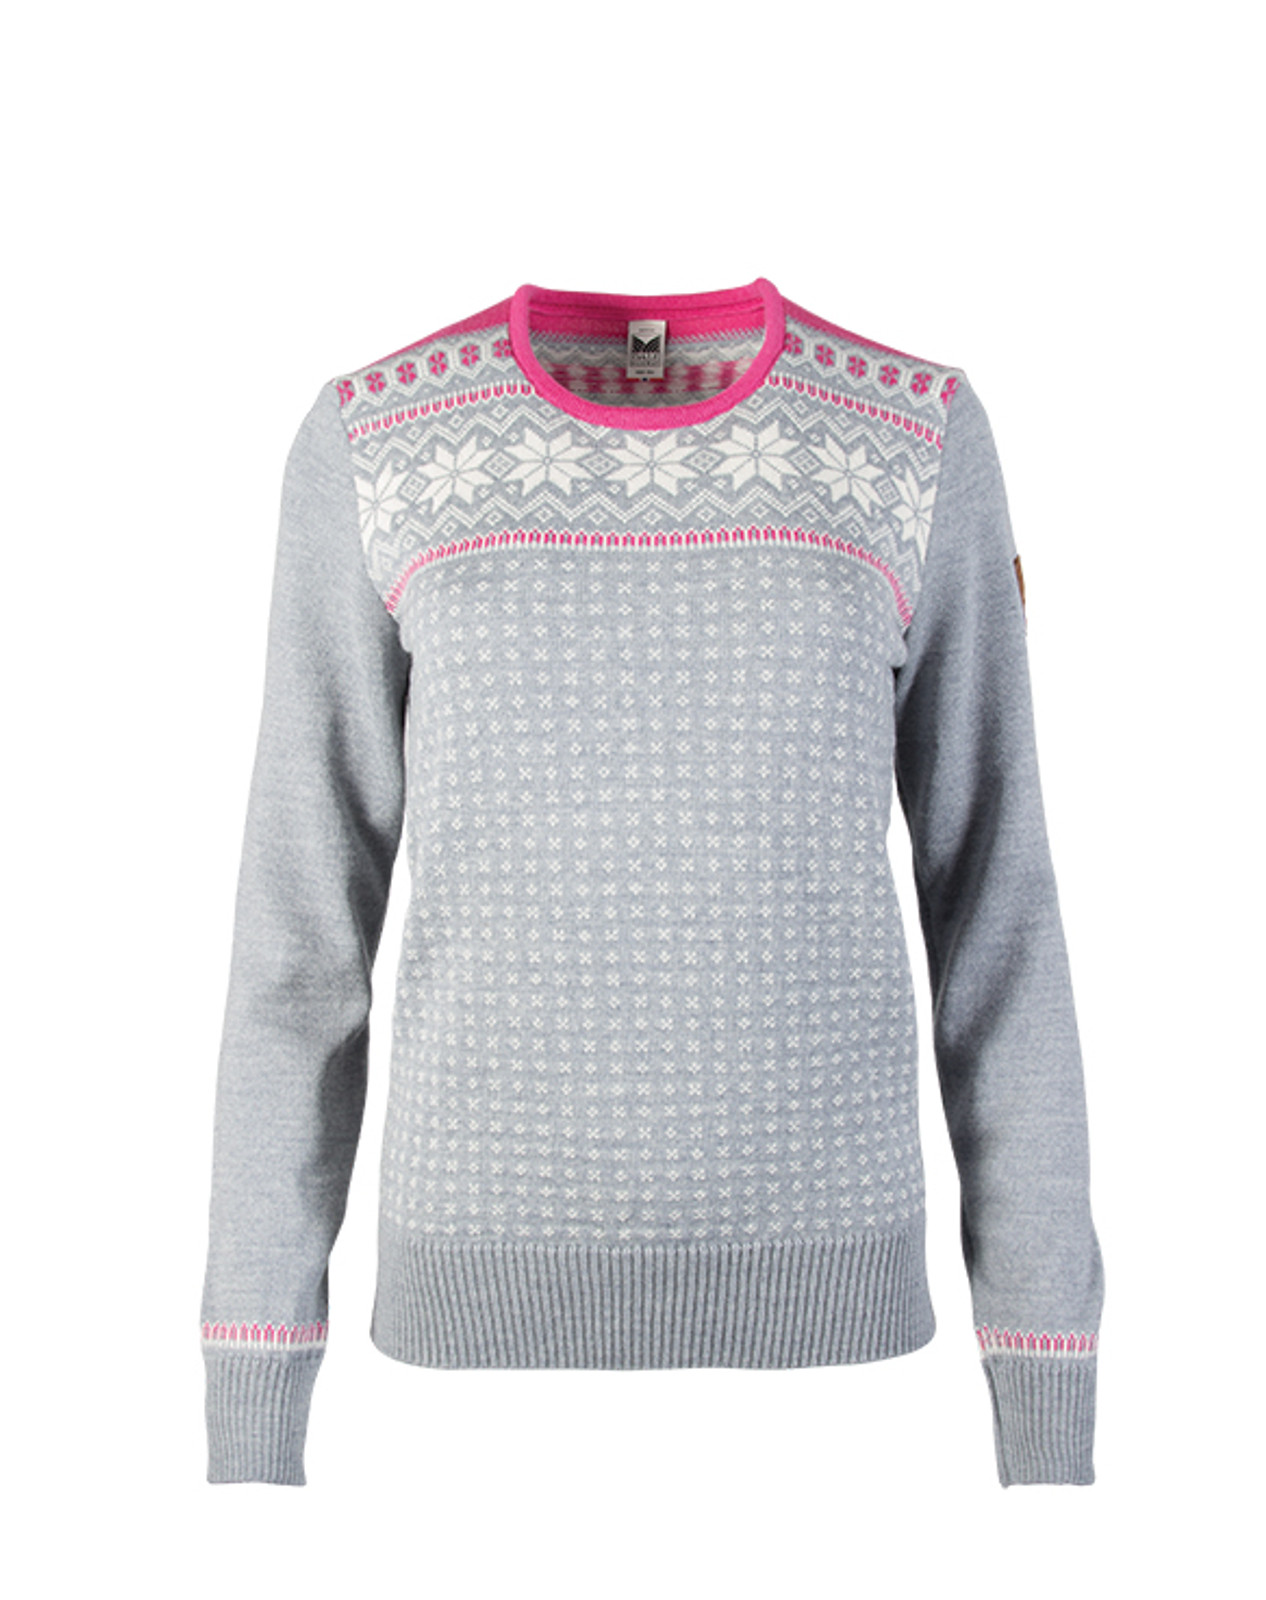 Dale of Norway, Garmisch Sweater, Ladies, in Grey Mel/Off White/Allium, 92601-I